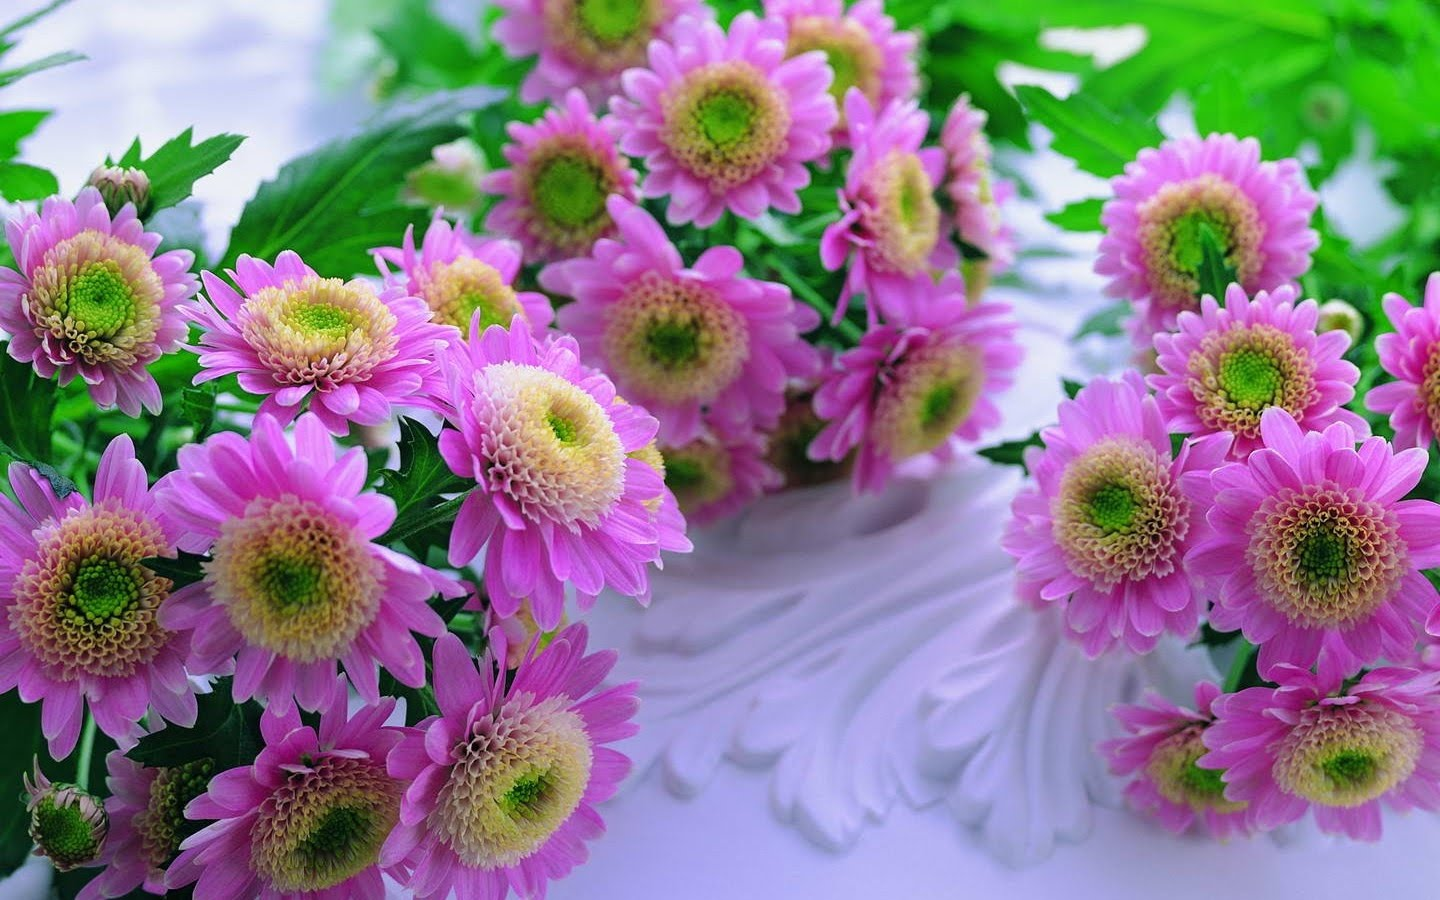 flowers for flower lovers Desktop Beautiful Flowers HD Wallpapers 1440x900